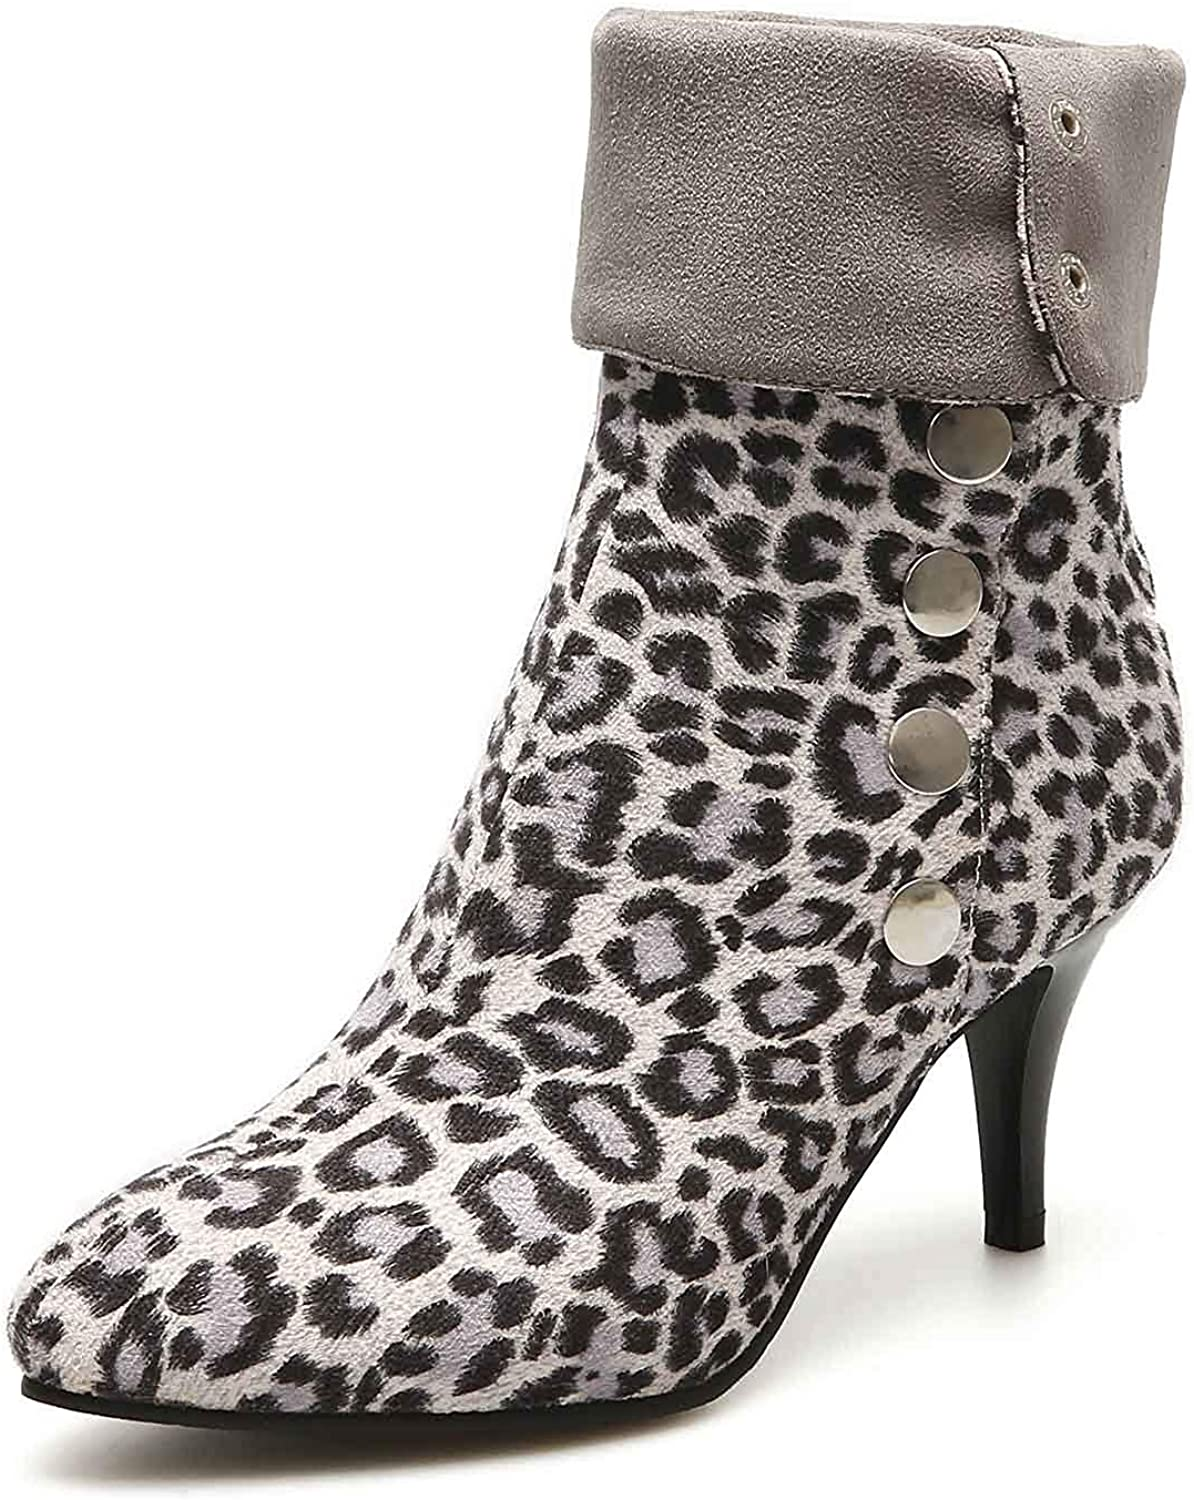 Unm Women's Pointy Toe Animal Print Boots with Buckles - High Stiletto Heel - Leopard Ankle Booties